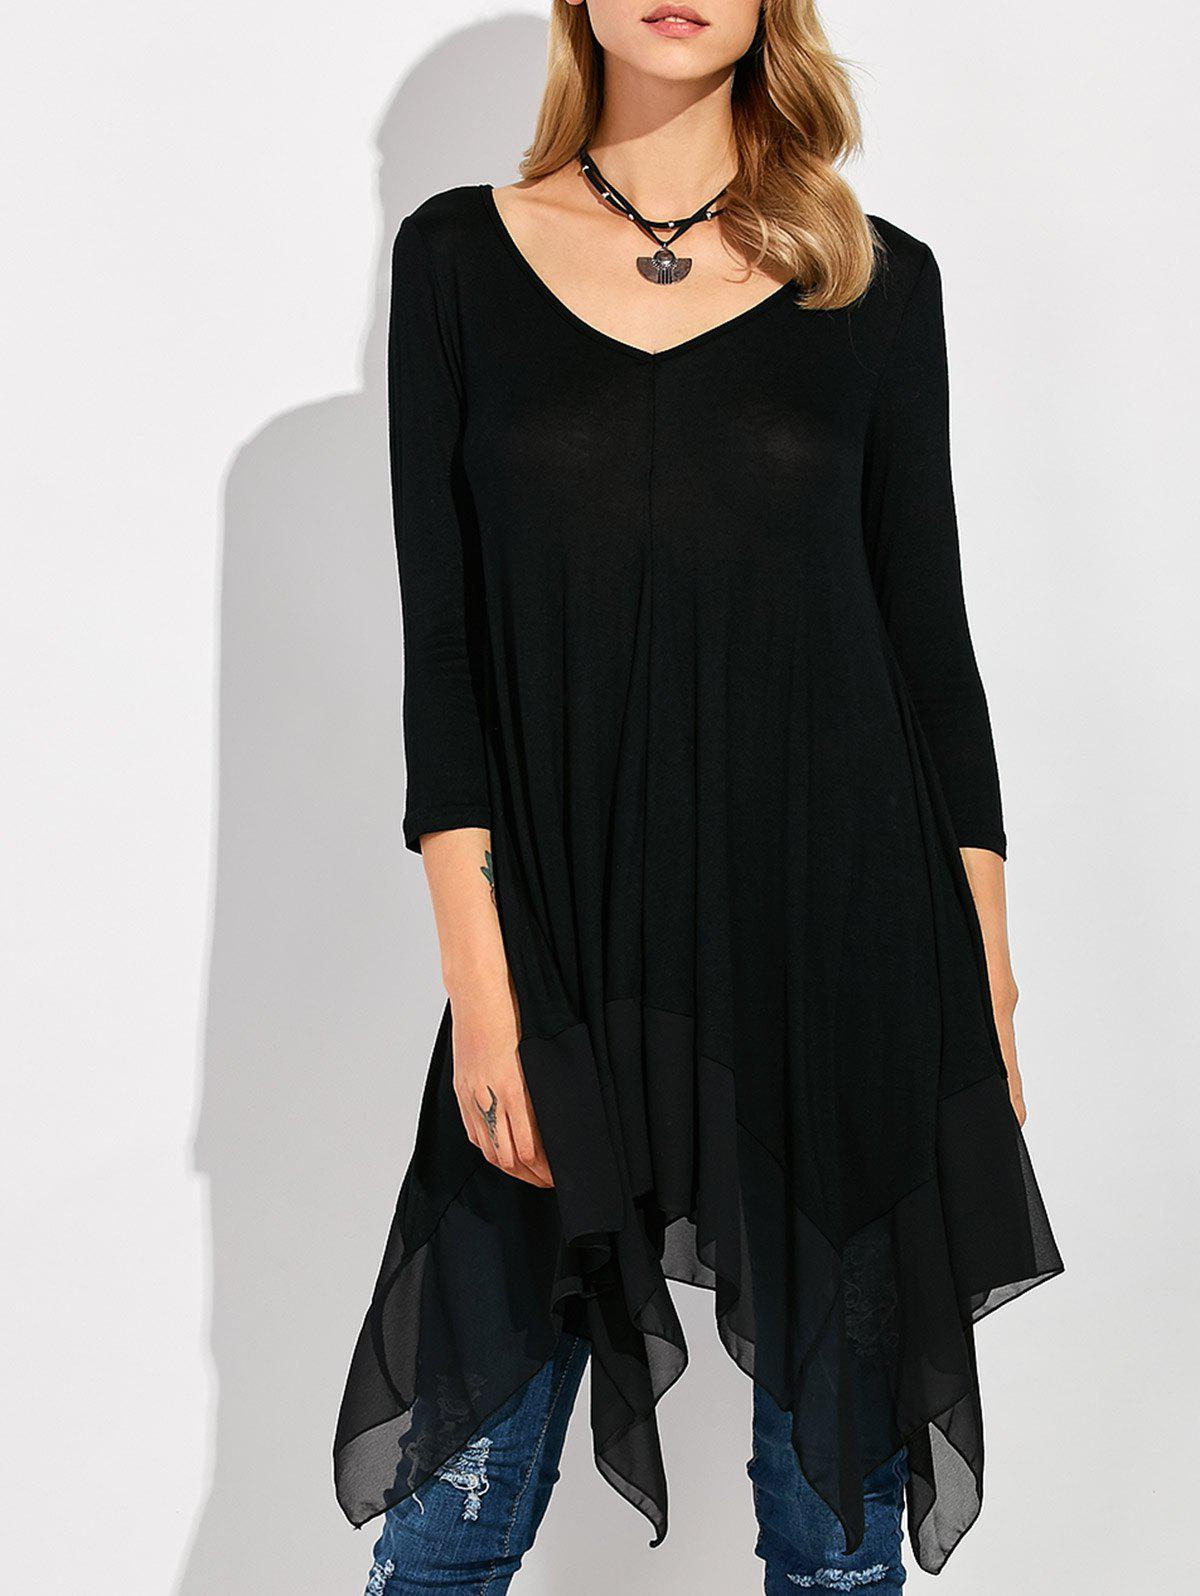 Long Sleeve Asymmetrical Handkerchief Long T-Shirt - BLACK XL